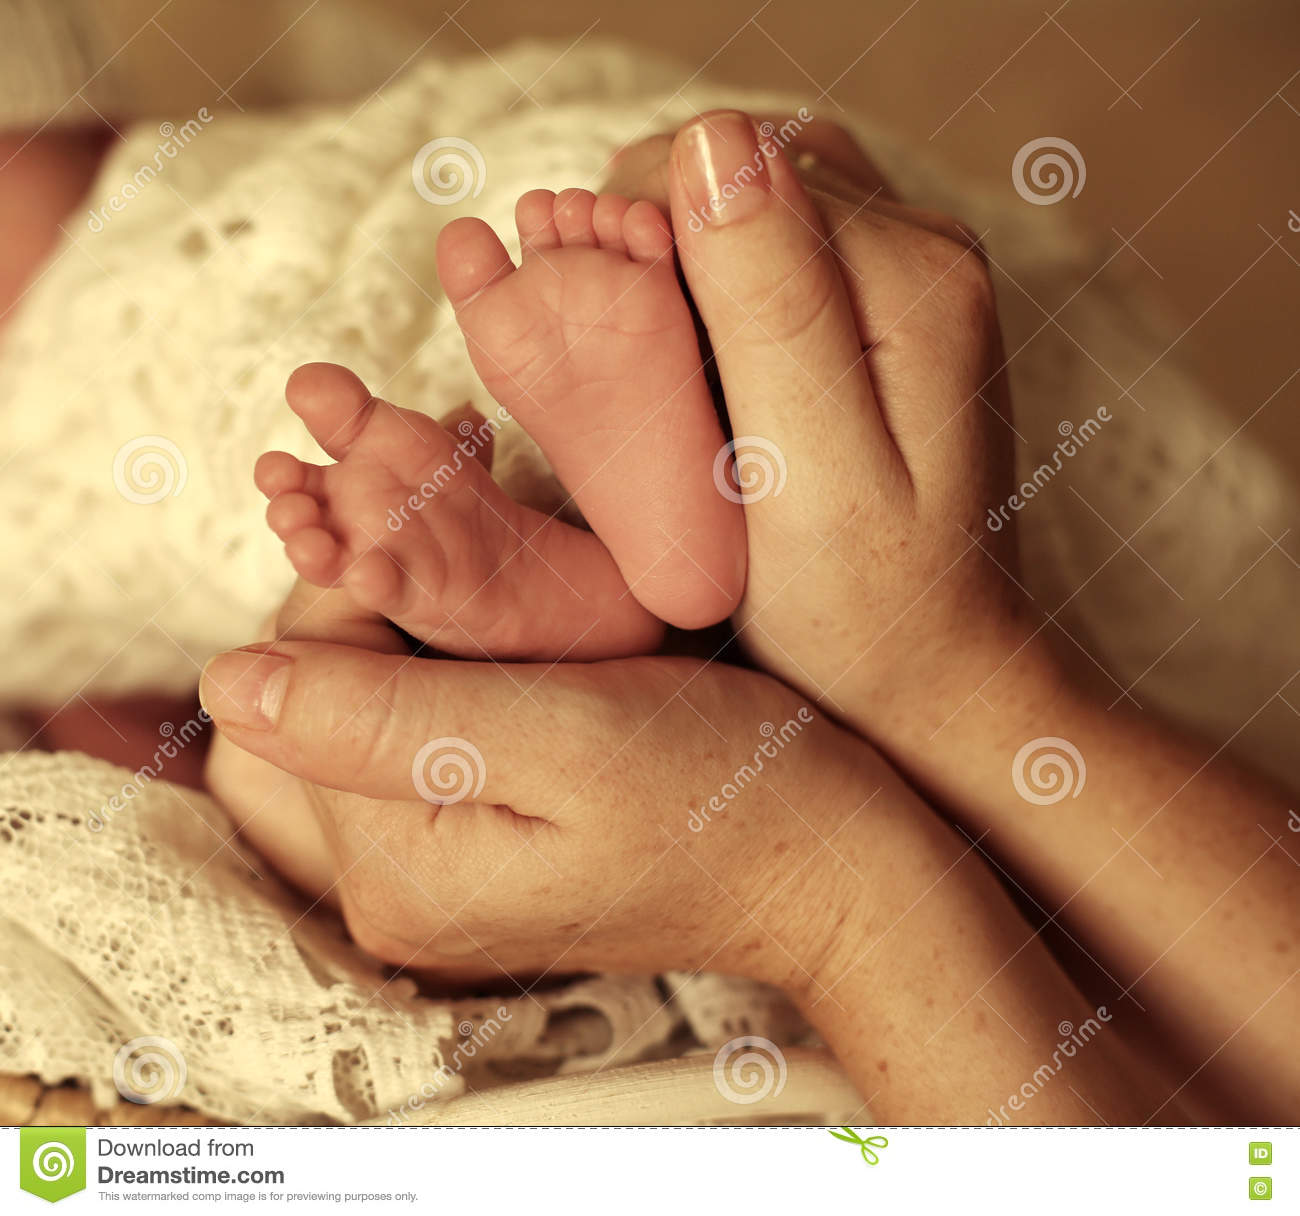 150a72d1ac Studio photo of cute beautiful newborn baby girl sleeping under cozy blanket.  mom holding her feets in hands